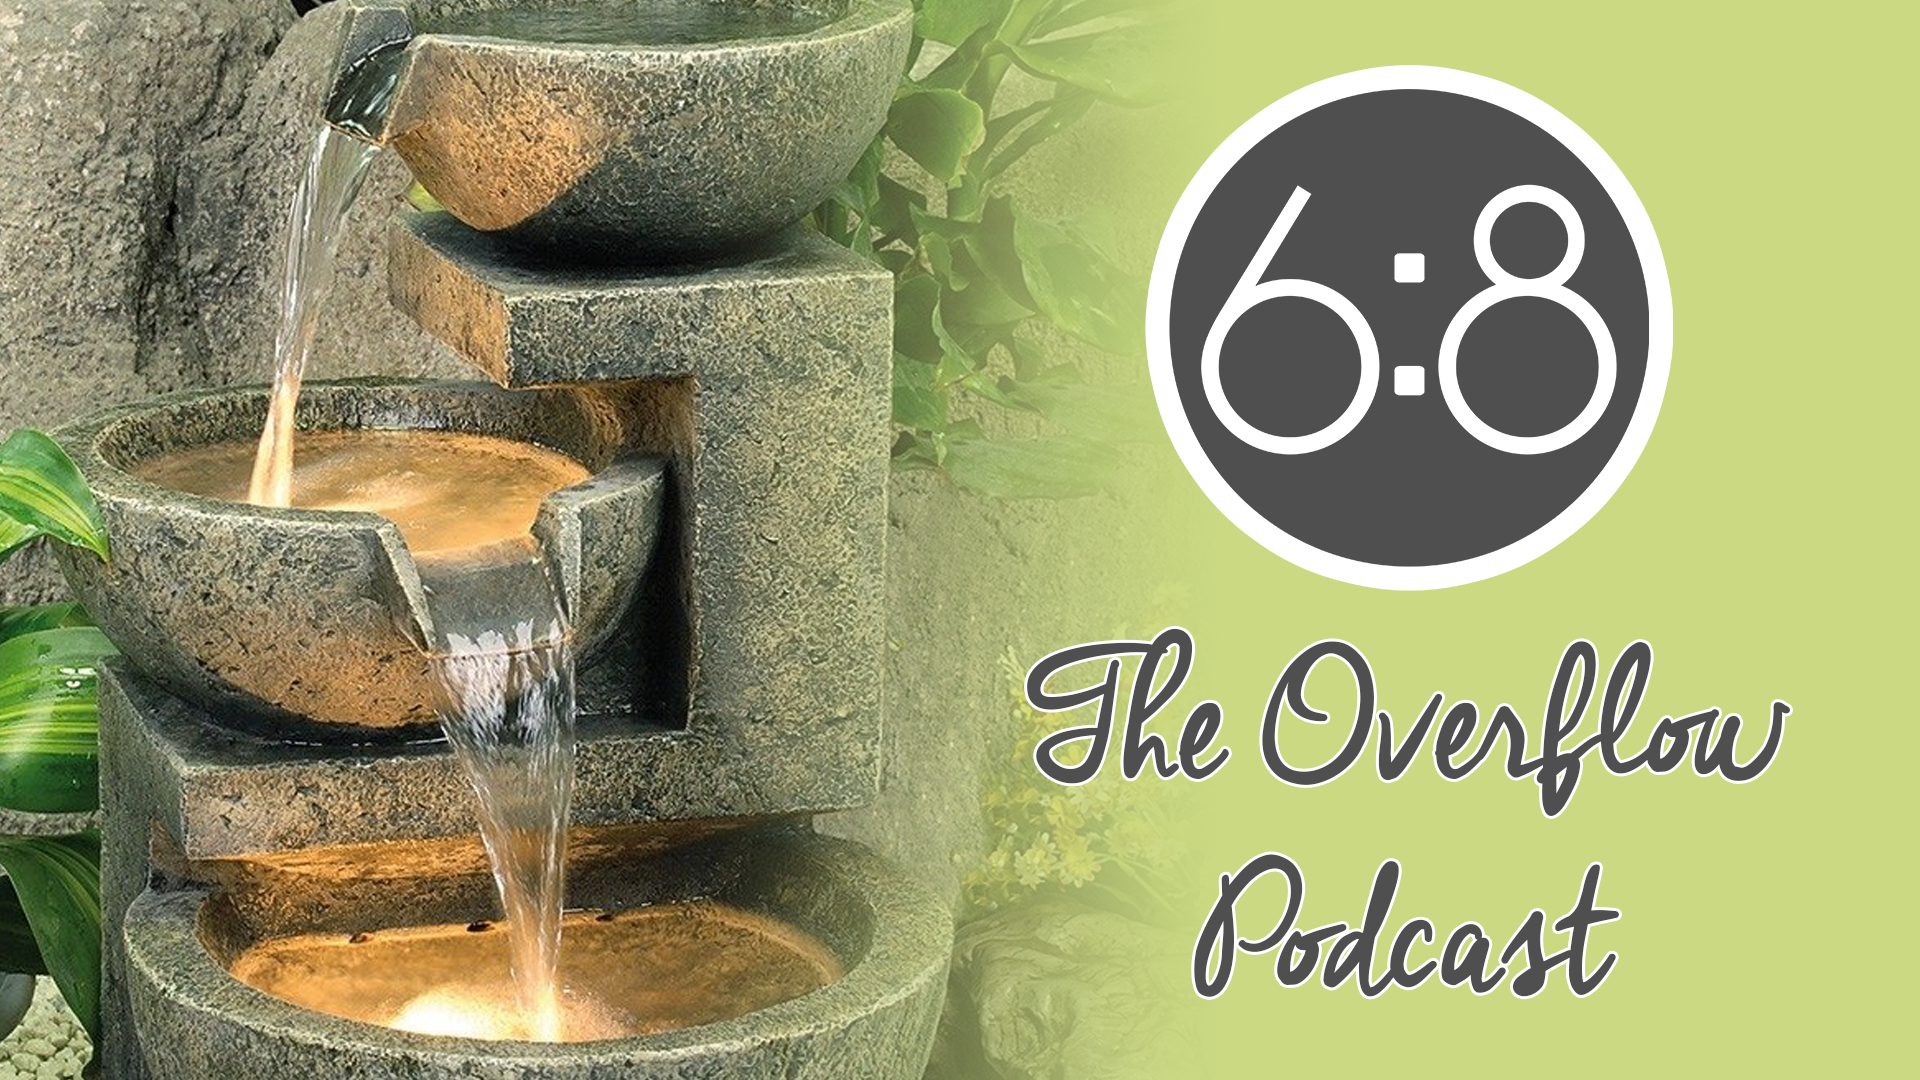 The Overflow Podcast, Episode 00036: Like Christ, Week 6, Day 4